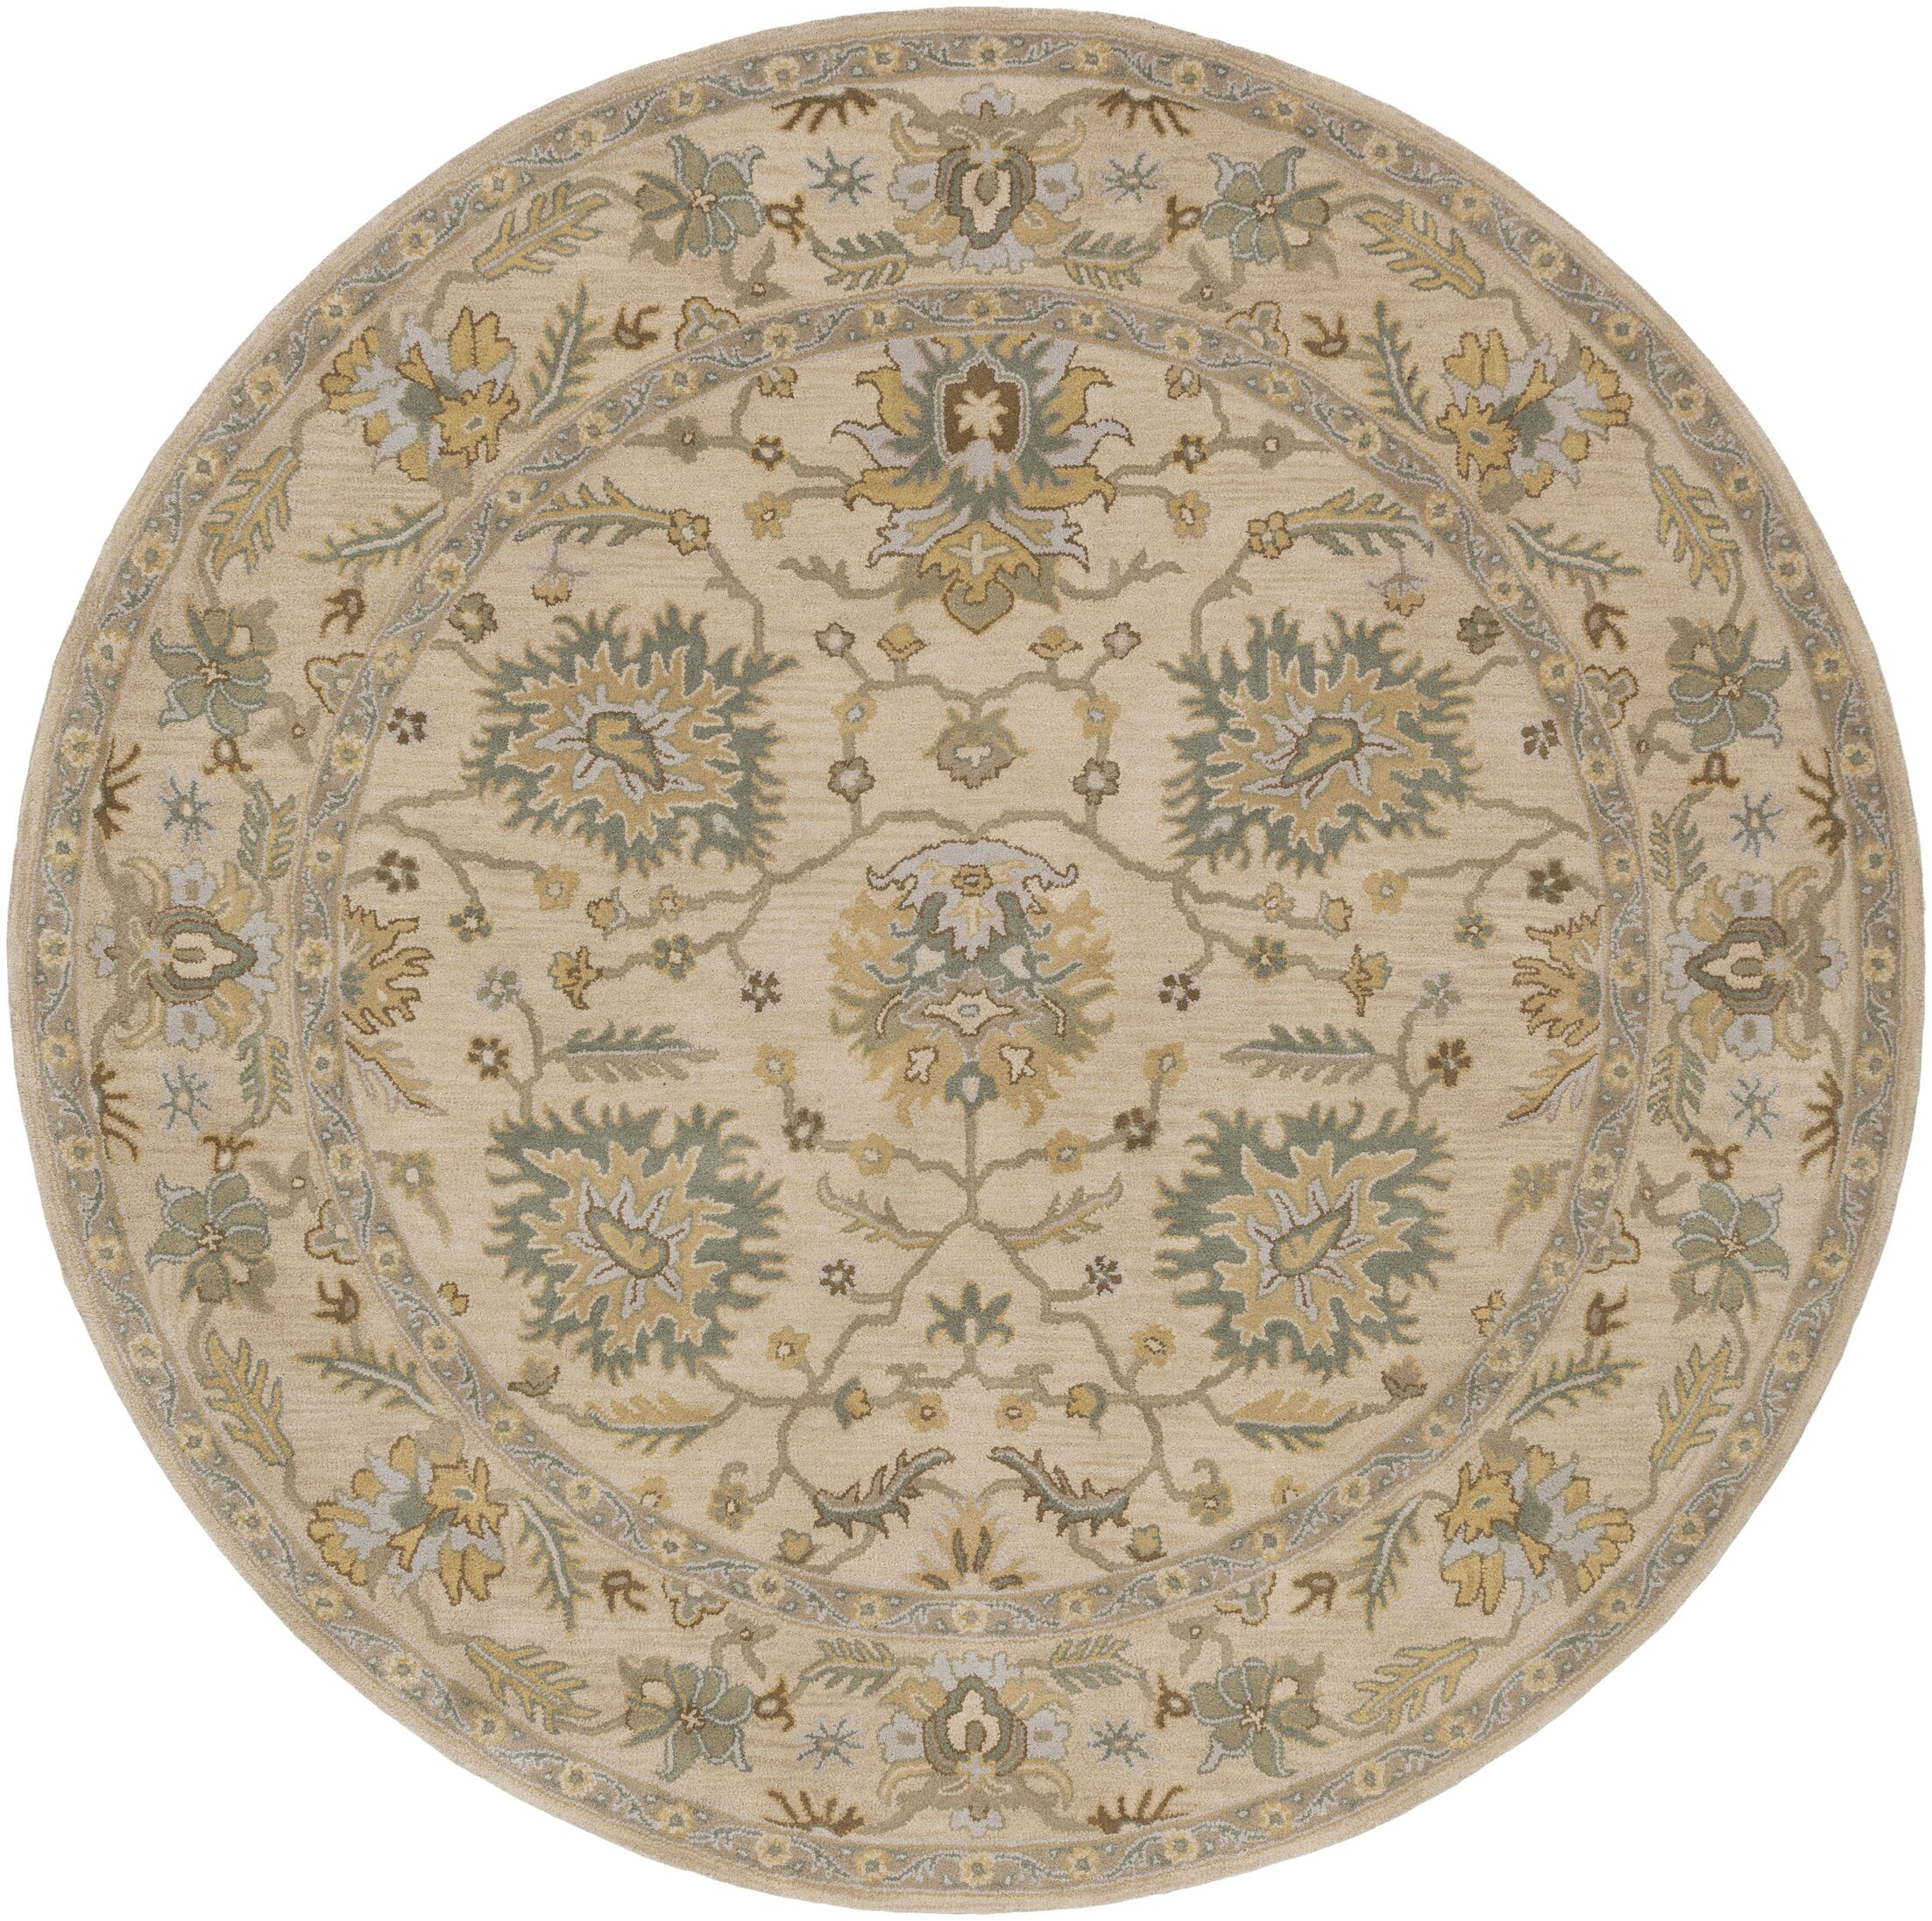 Millwood Hand-Tufted Green/Brown Area Rug Rug Size: Round 9'9